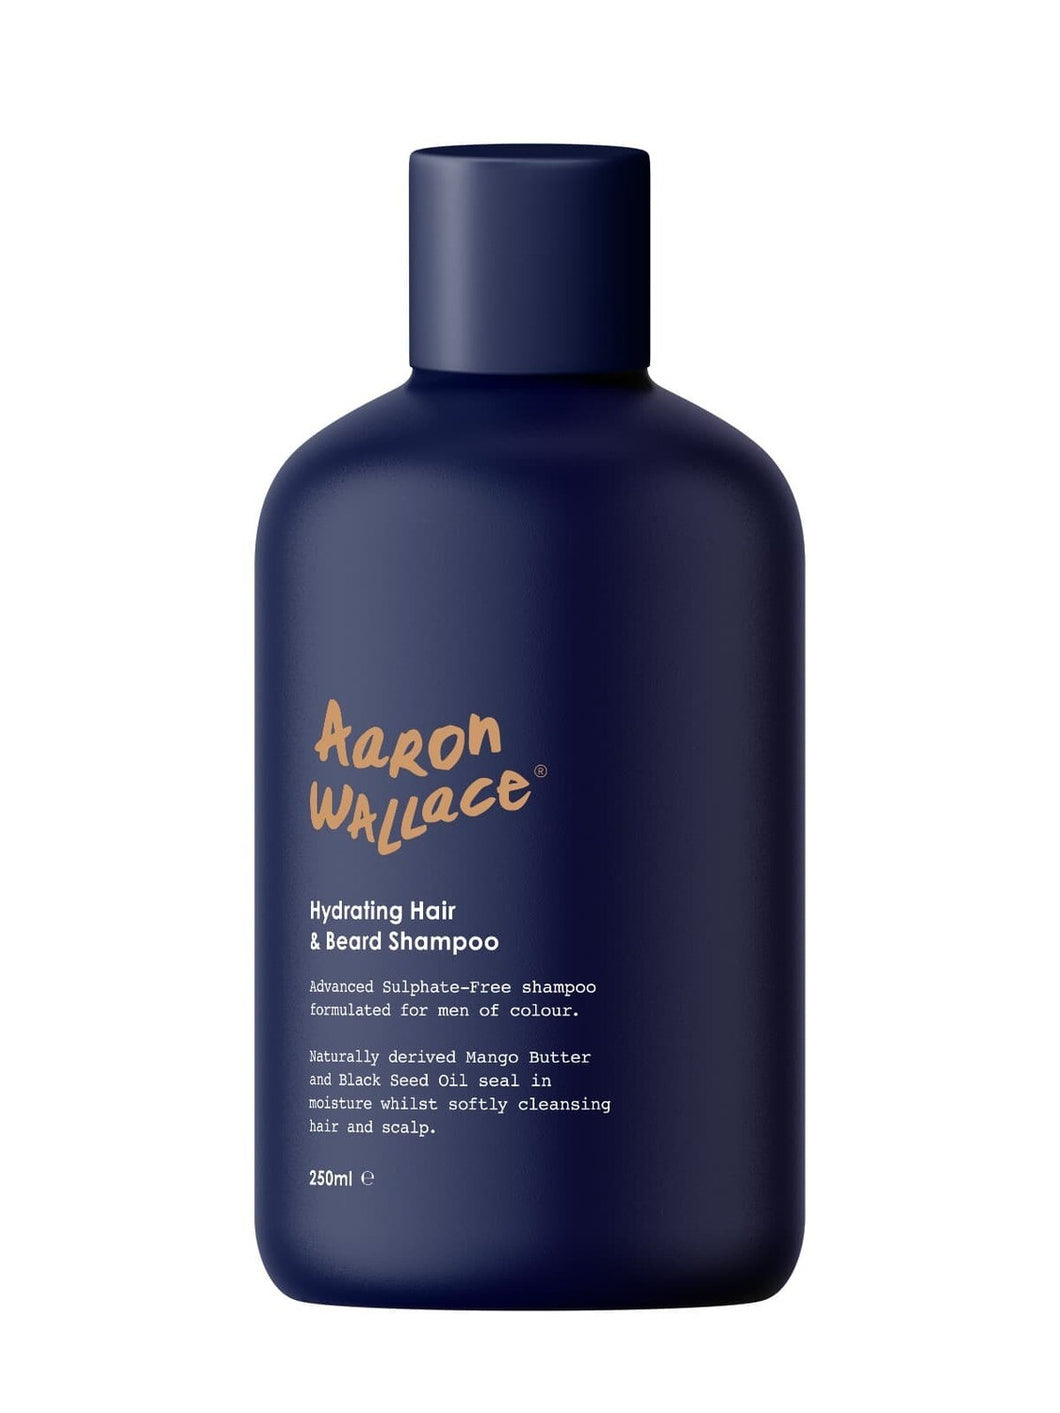 Aaron Wallace: Hydrating Hair & Beard Shampoo